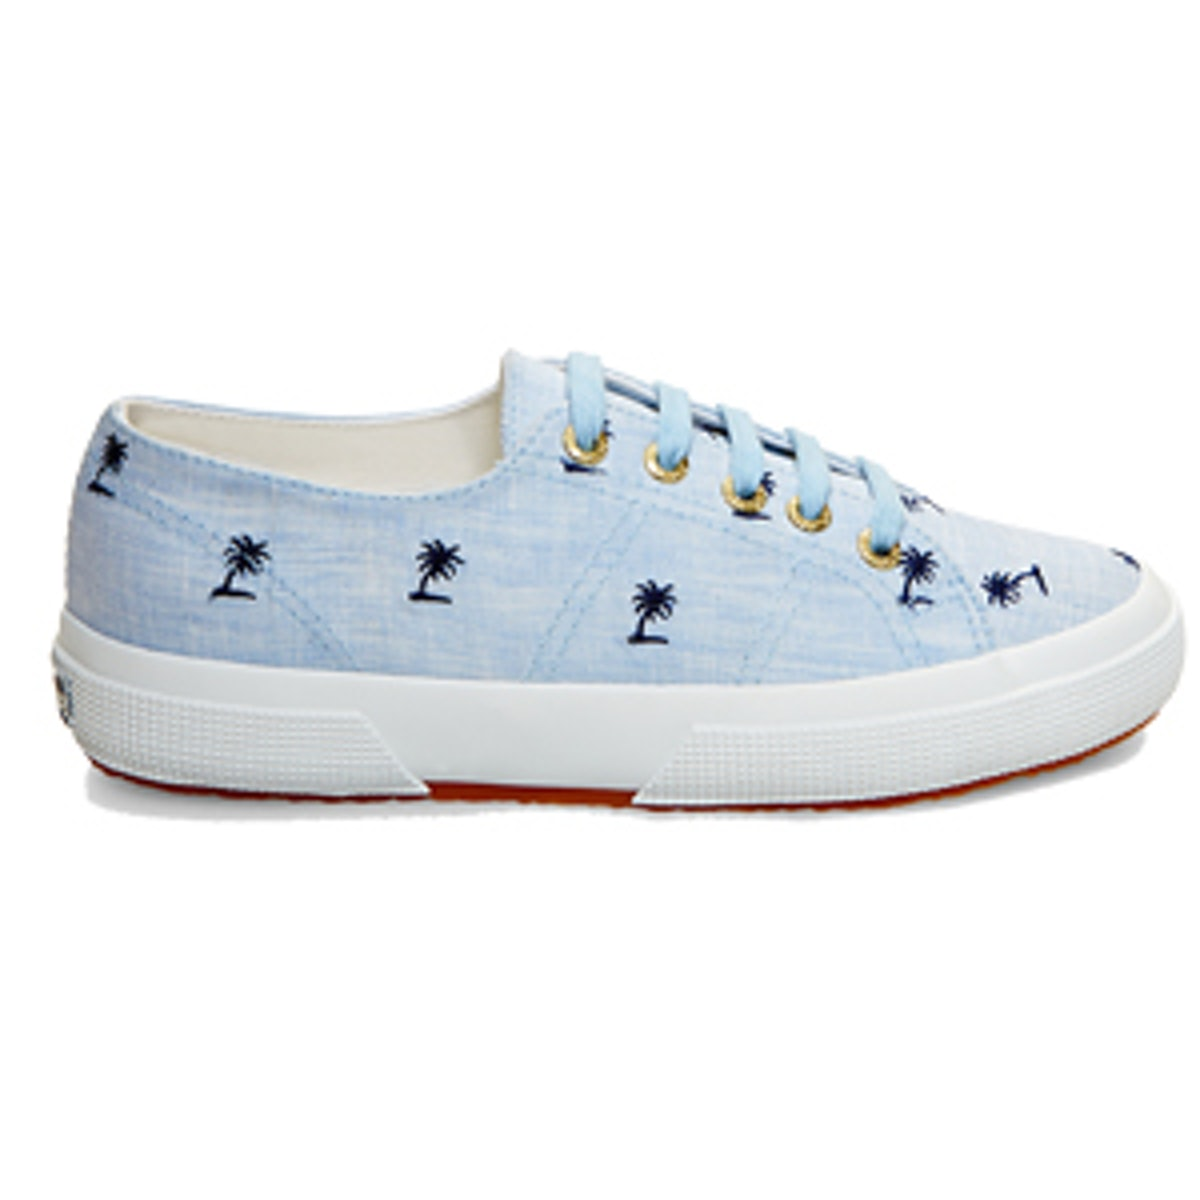 2750 Linembrw in Light Blue